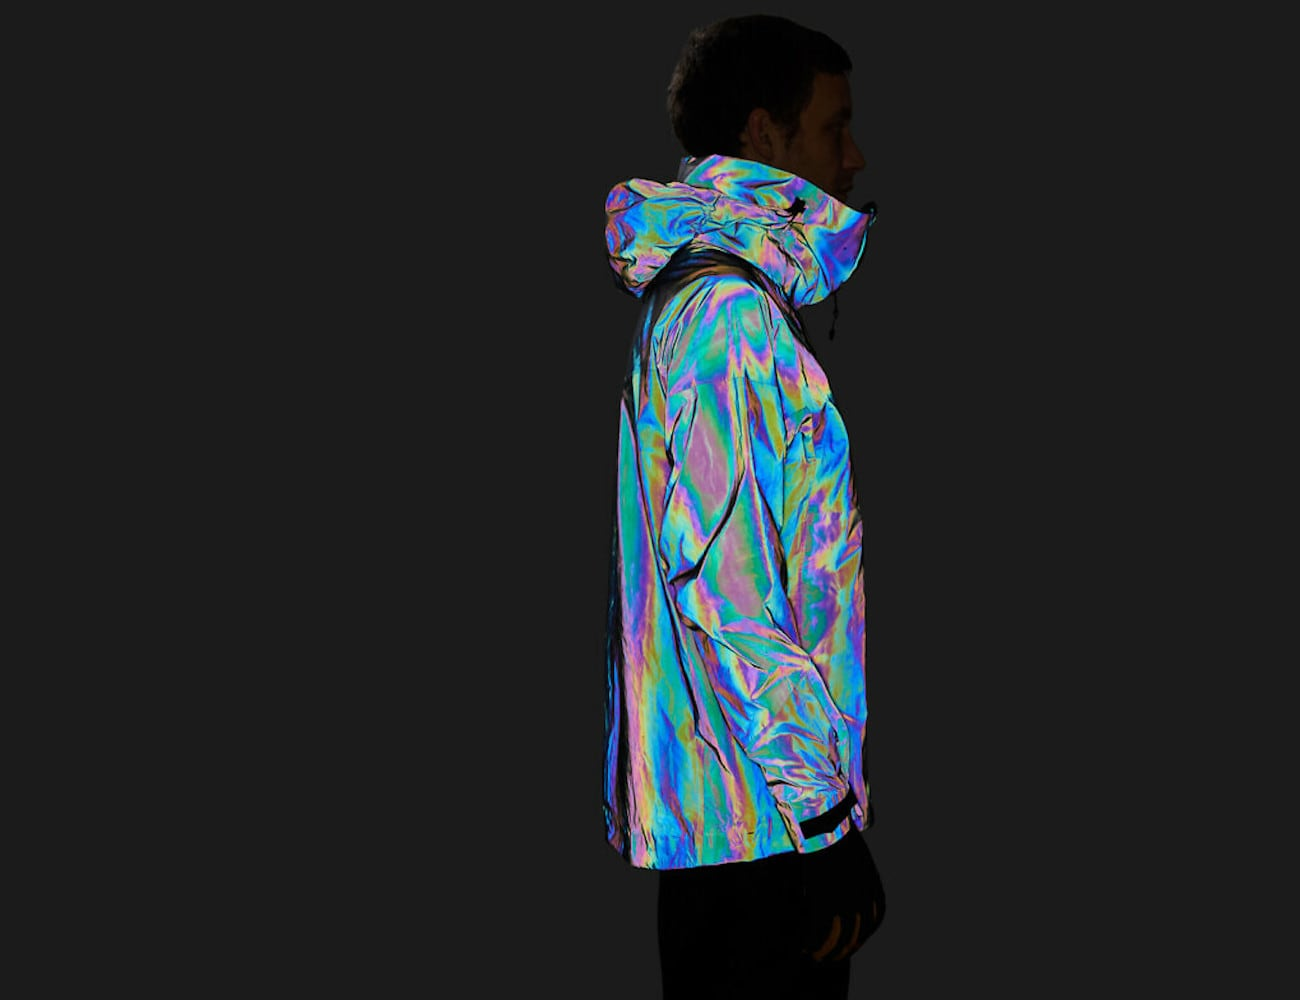 Vollebak Squid-Ink Inspired Jacket employs color-shifting technology inspired by the animal kingdom